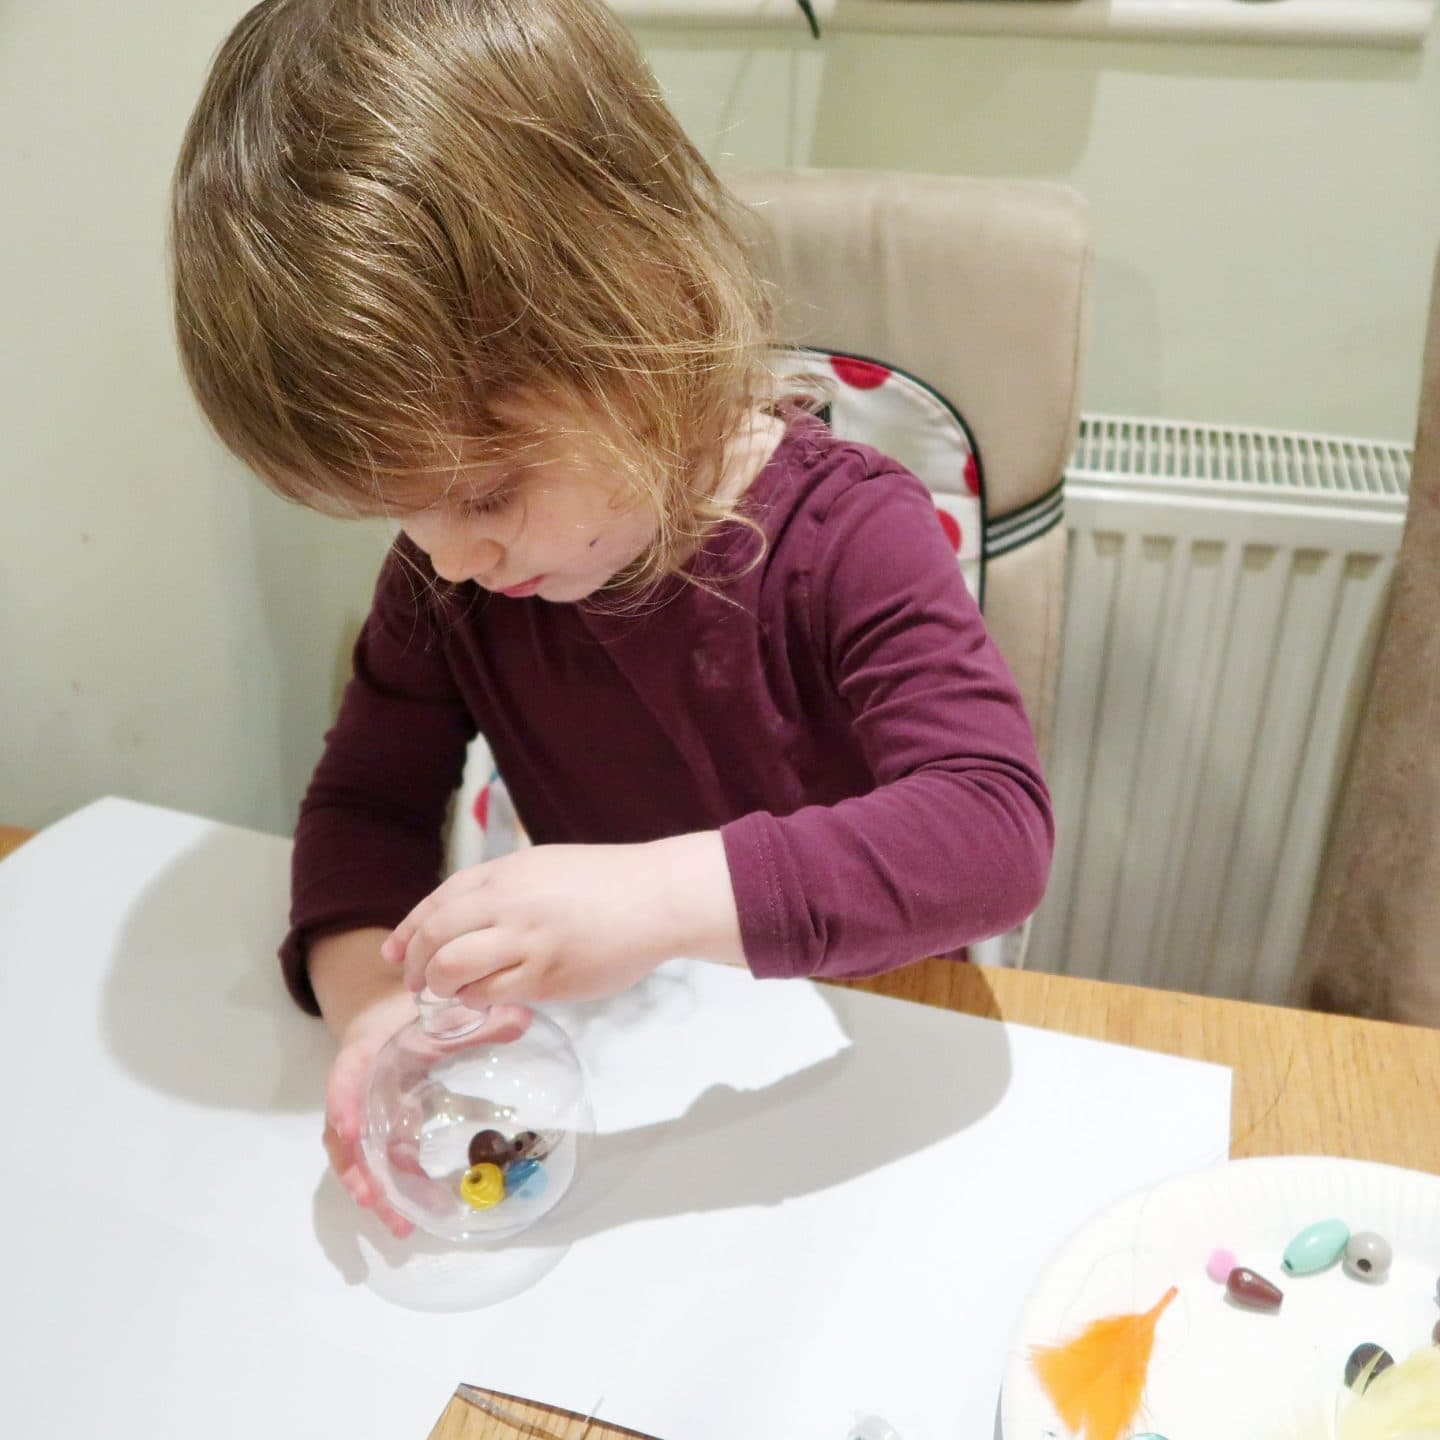 Small girl threading beads into a clear plastic bauble - for sensory bauble craft